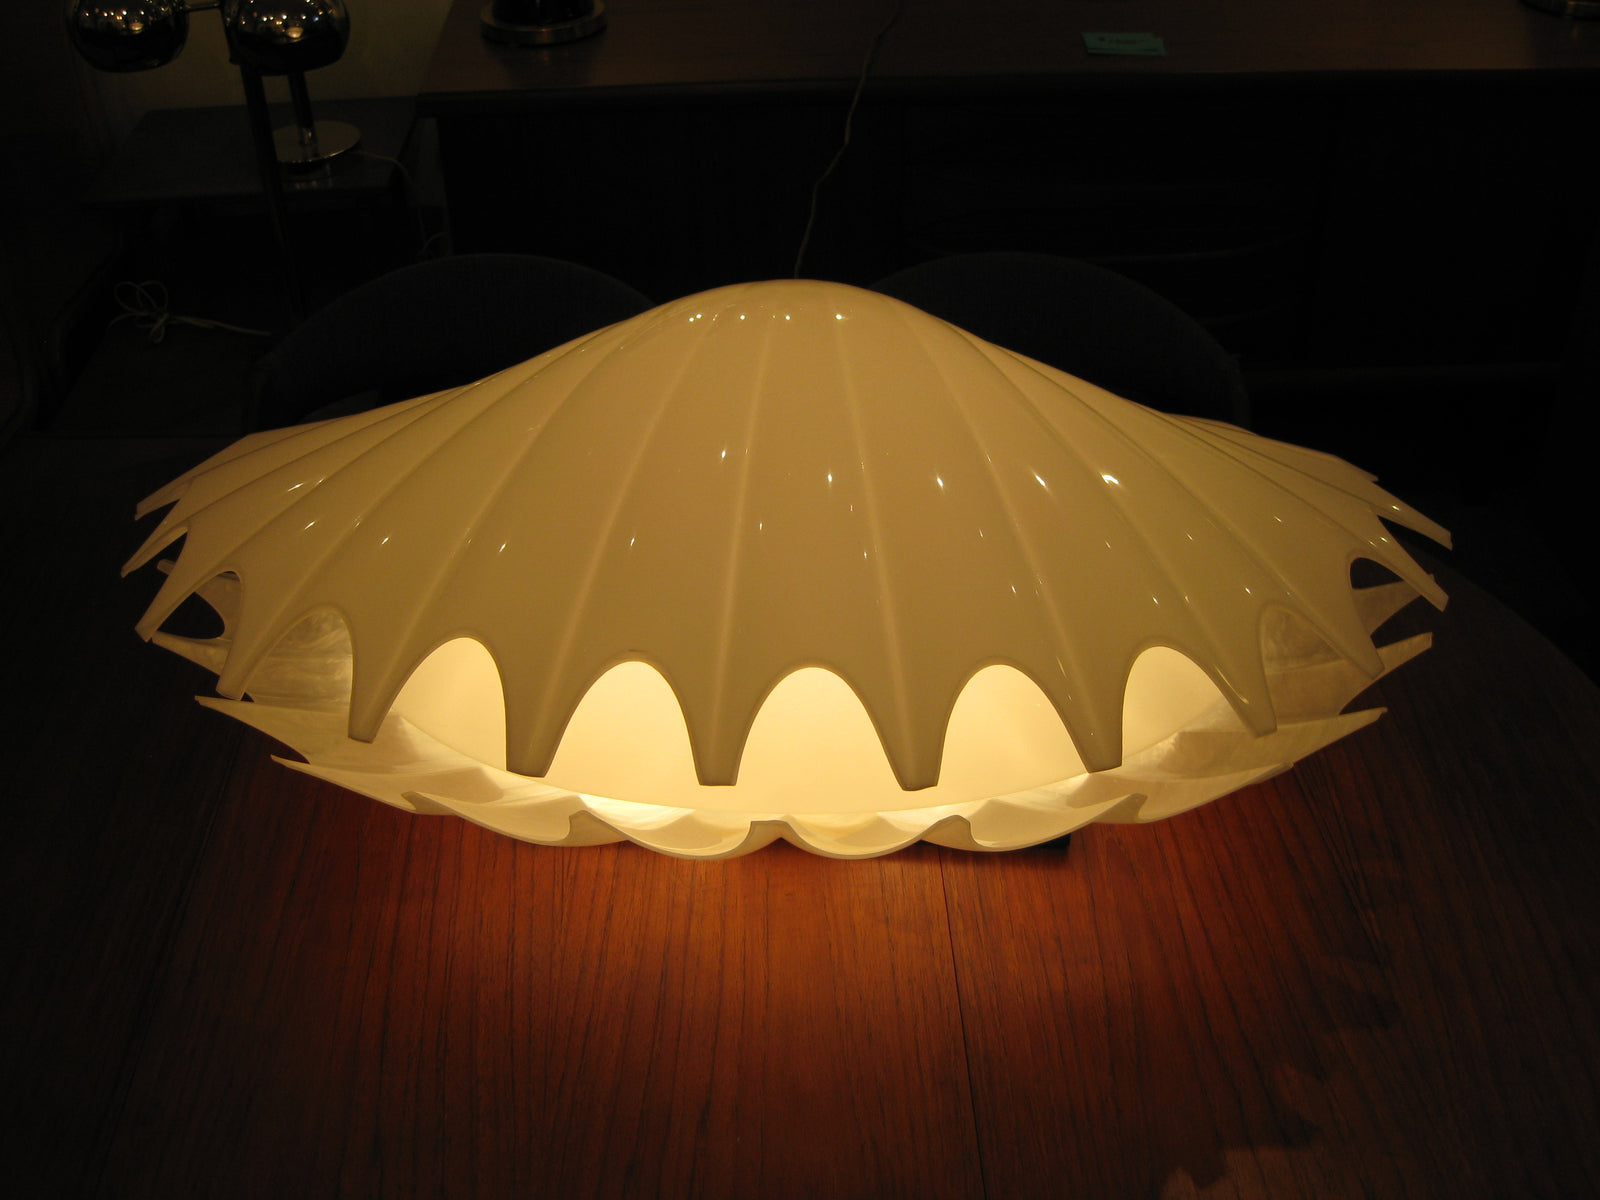 Vintage 1970 Rougier Clam lamp